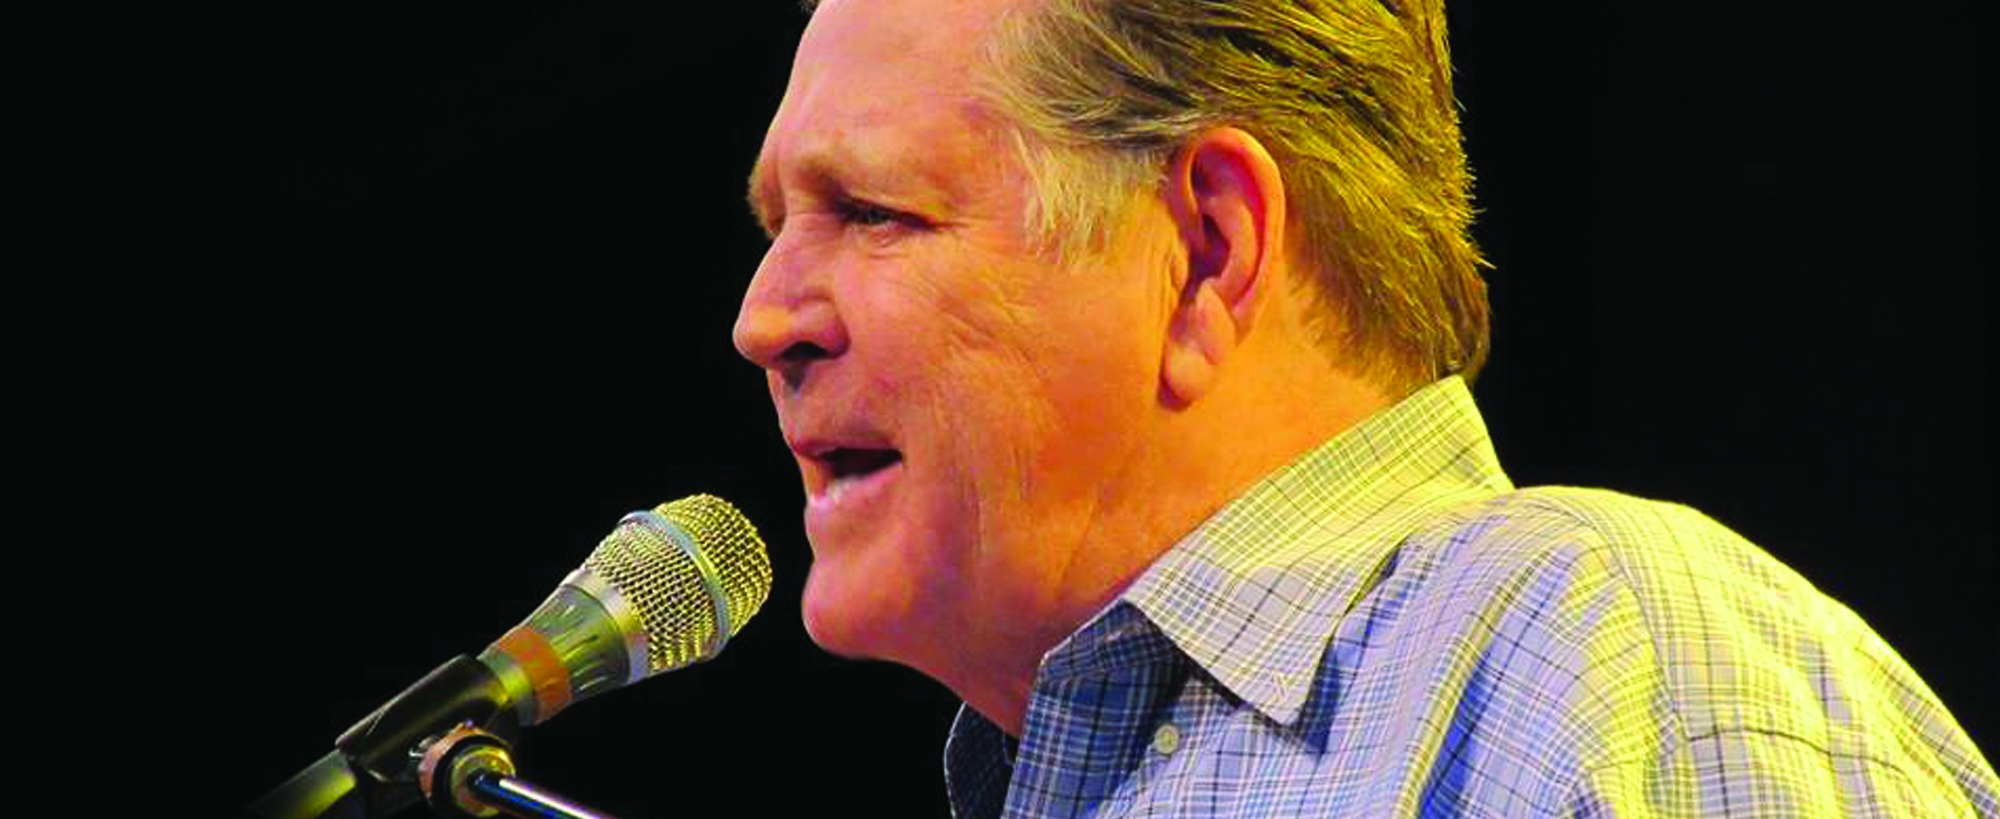 Brian Wilson presents Pet Sounds – The Final Performances